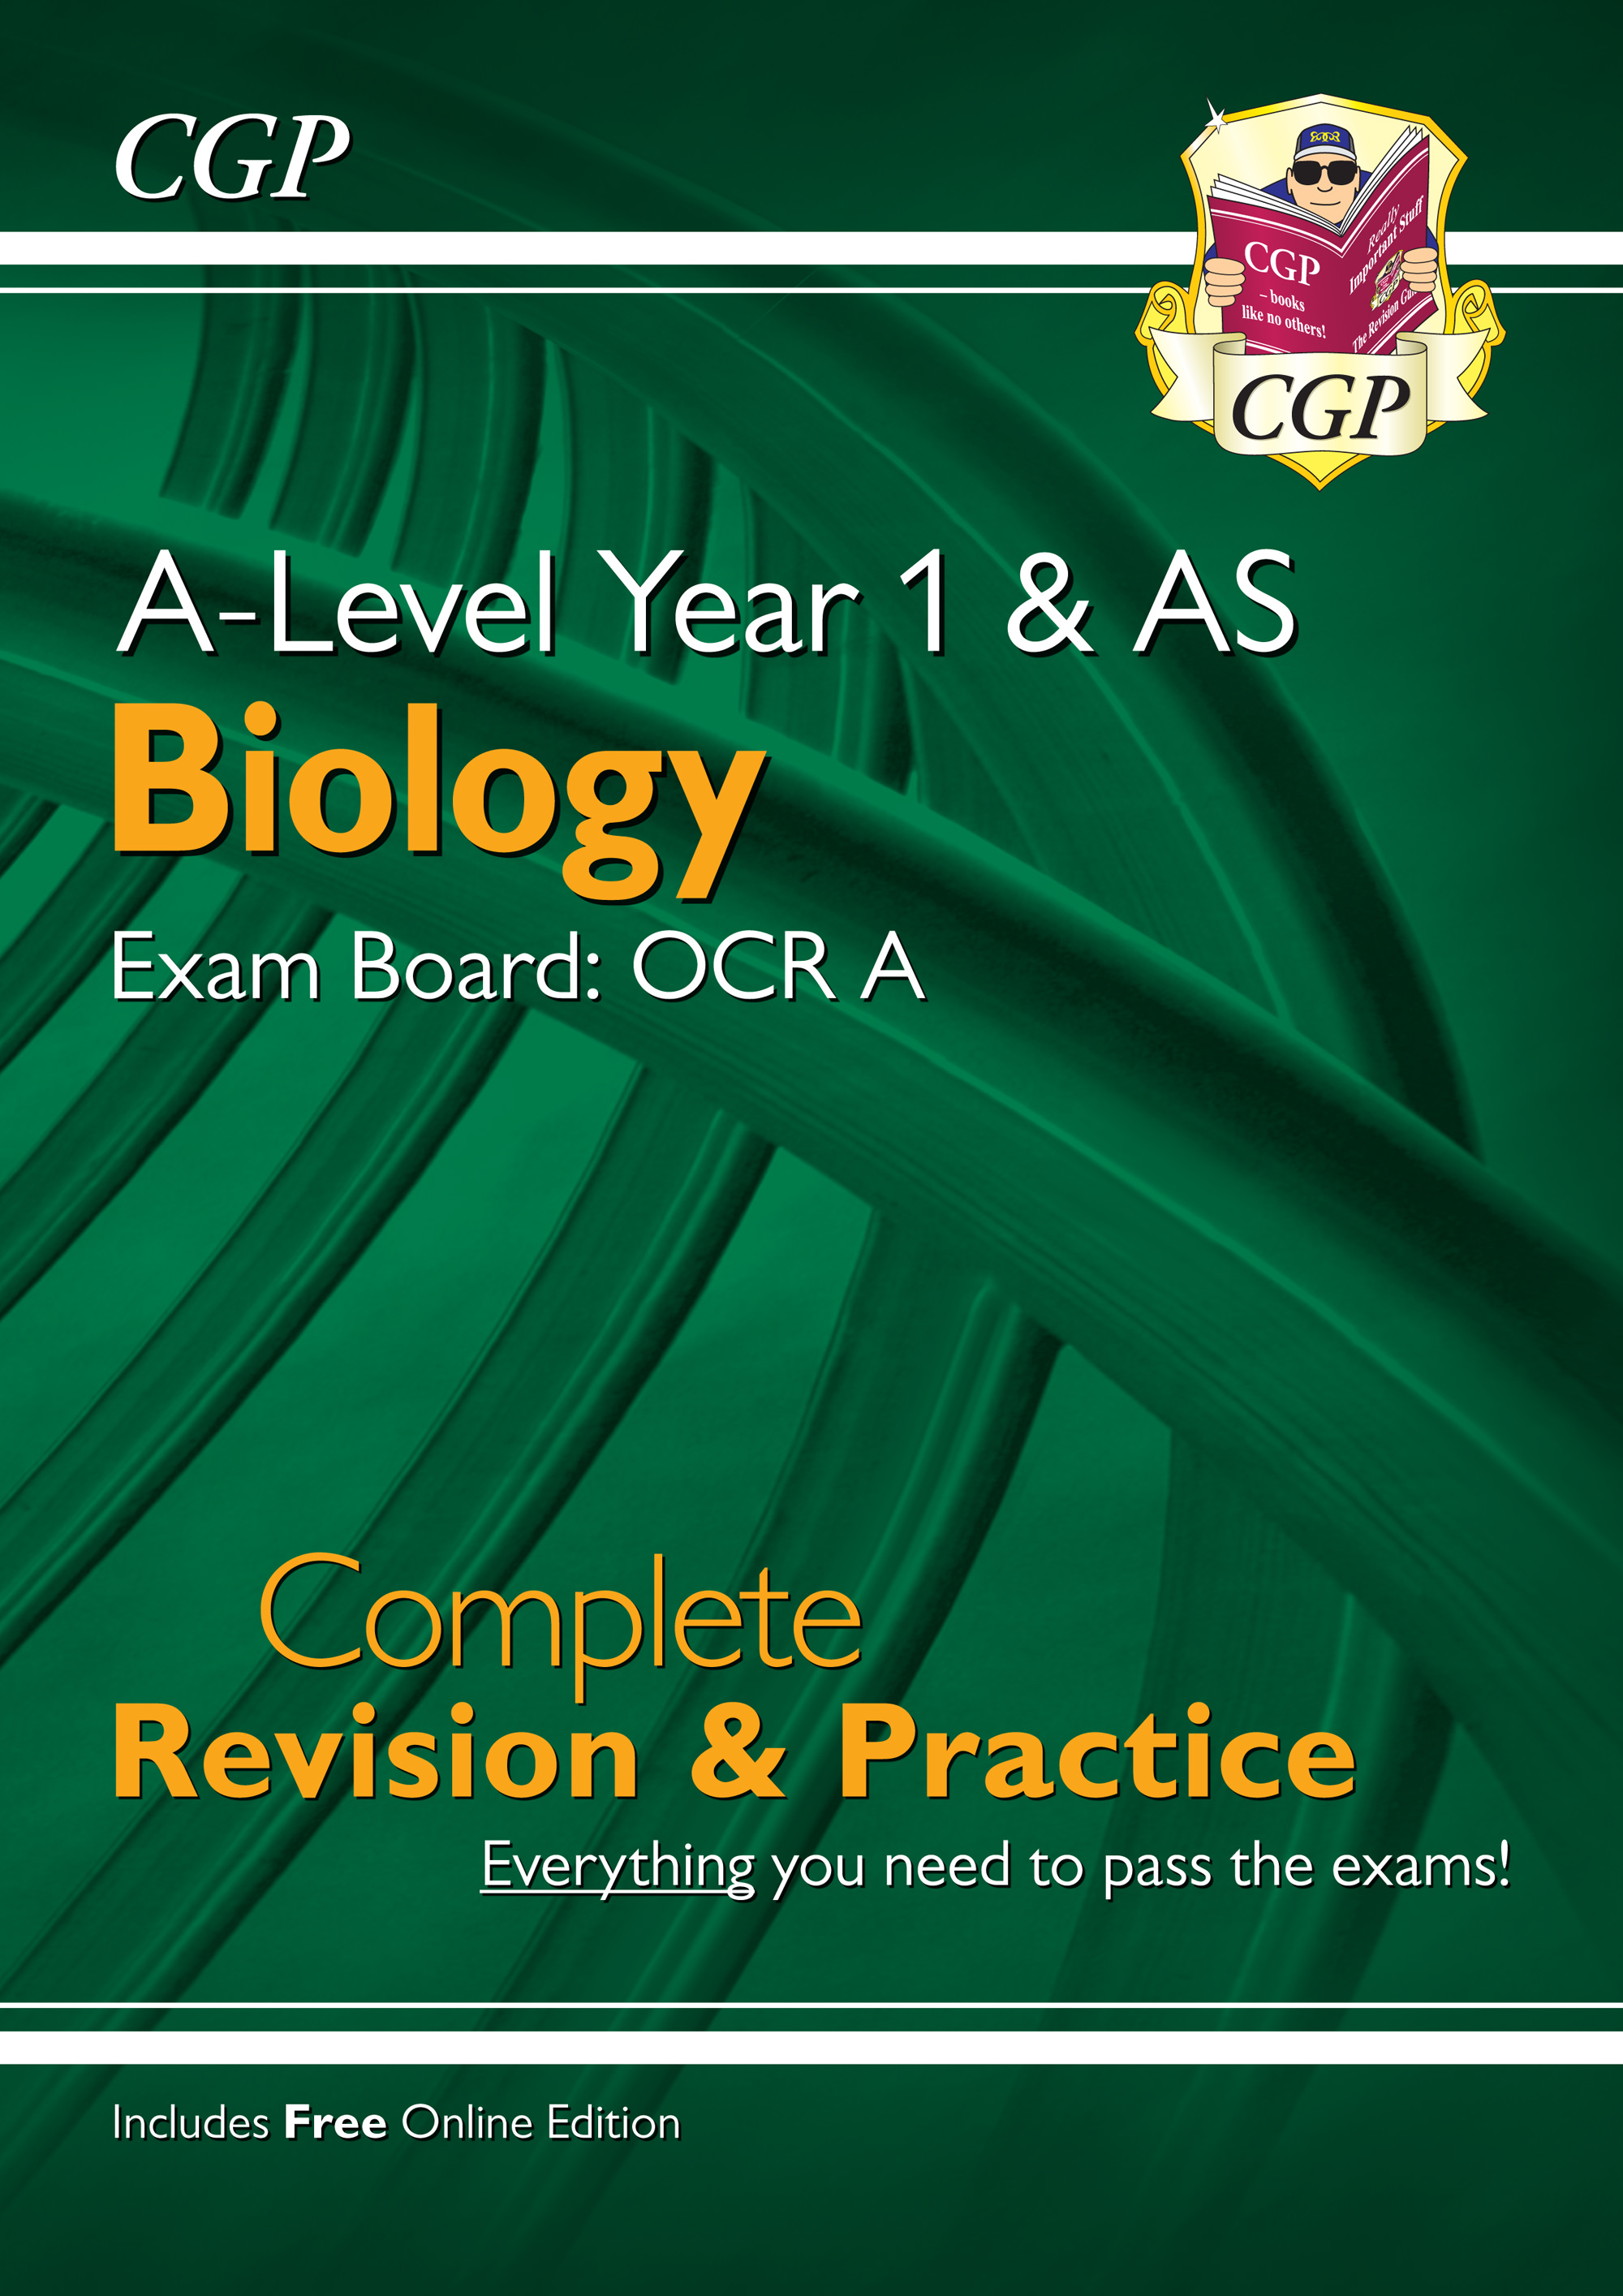 BRAR55 - New A-Level Biology: OCR A Year 1 & AS Complete Revision & Practice with Online Edition